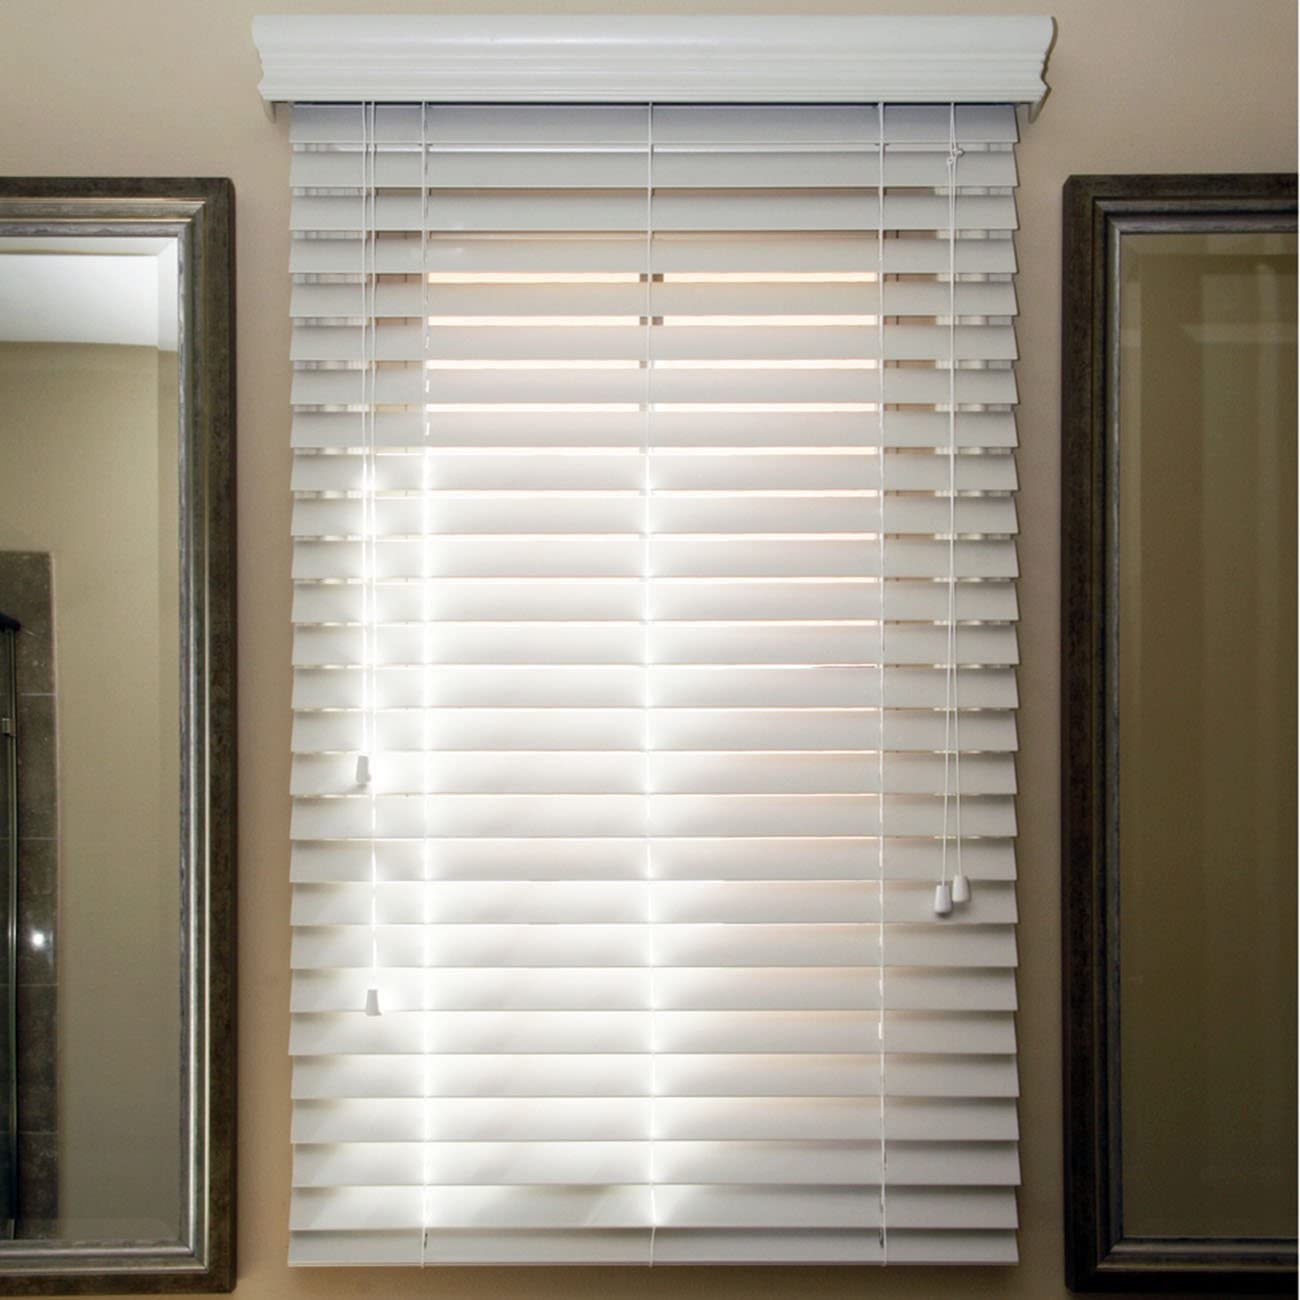 Chicology Trust Faux Wood Blind Realistic Max 84% OFF Whi Sugar Look White